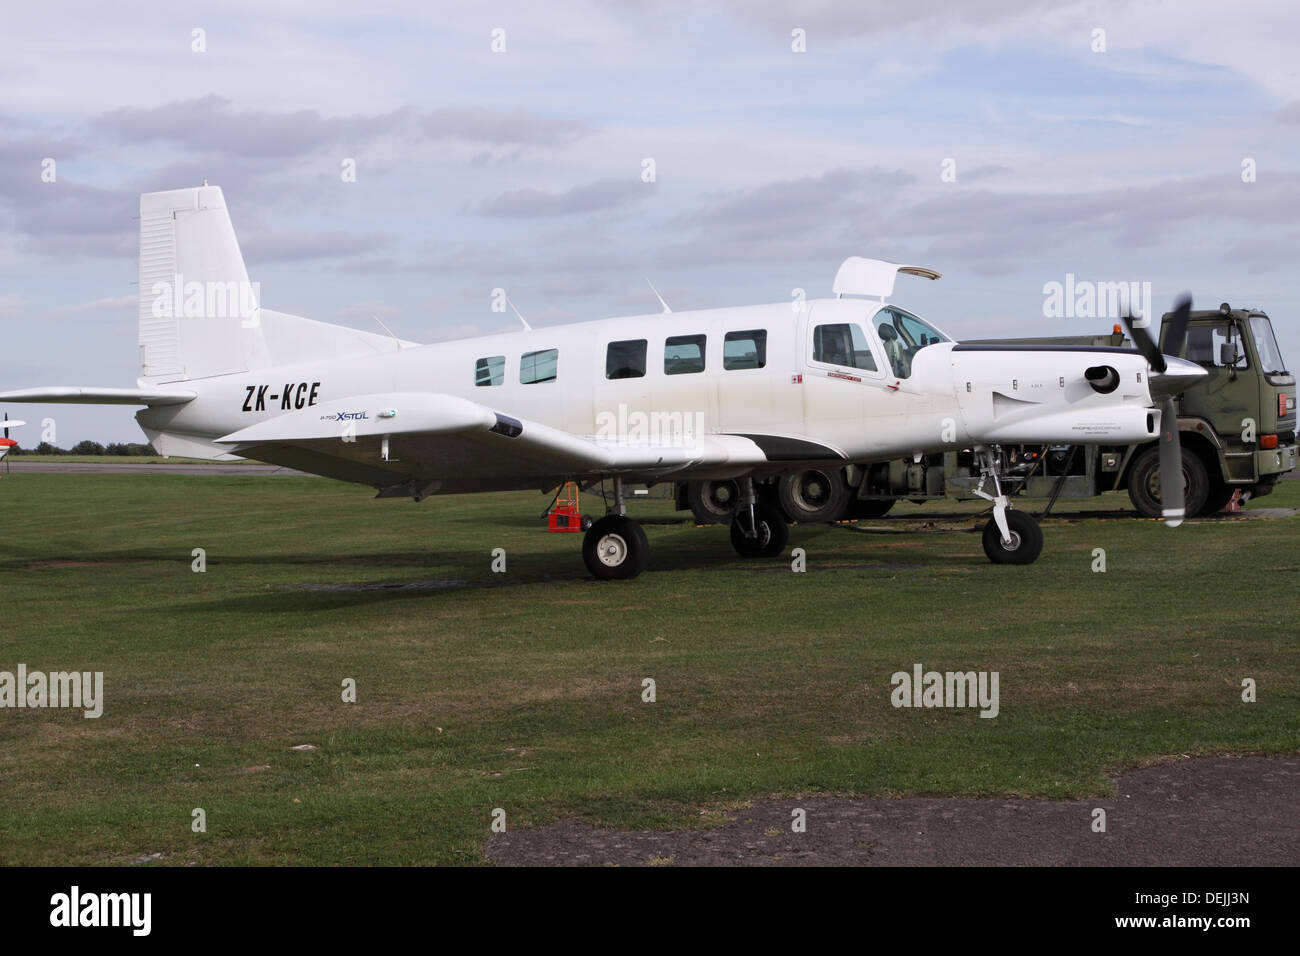 Single Engine Turboprop Stock Photos & Single Engine